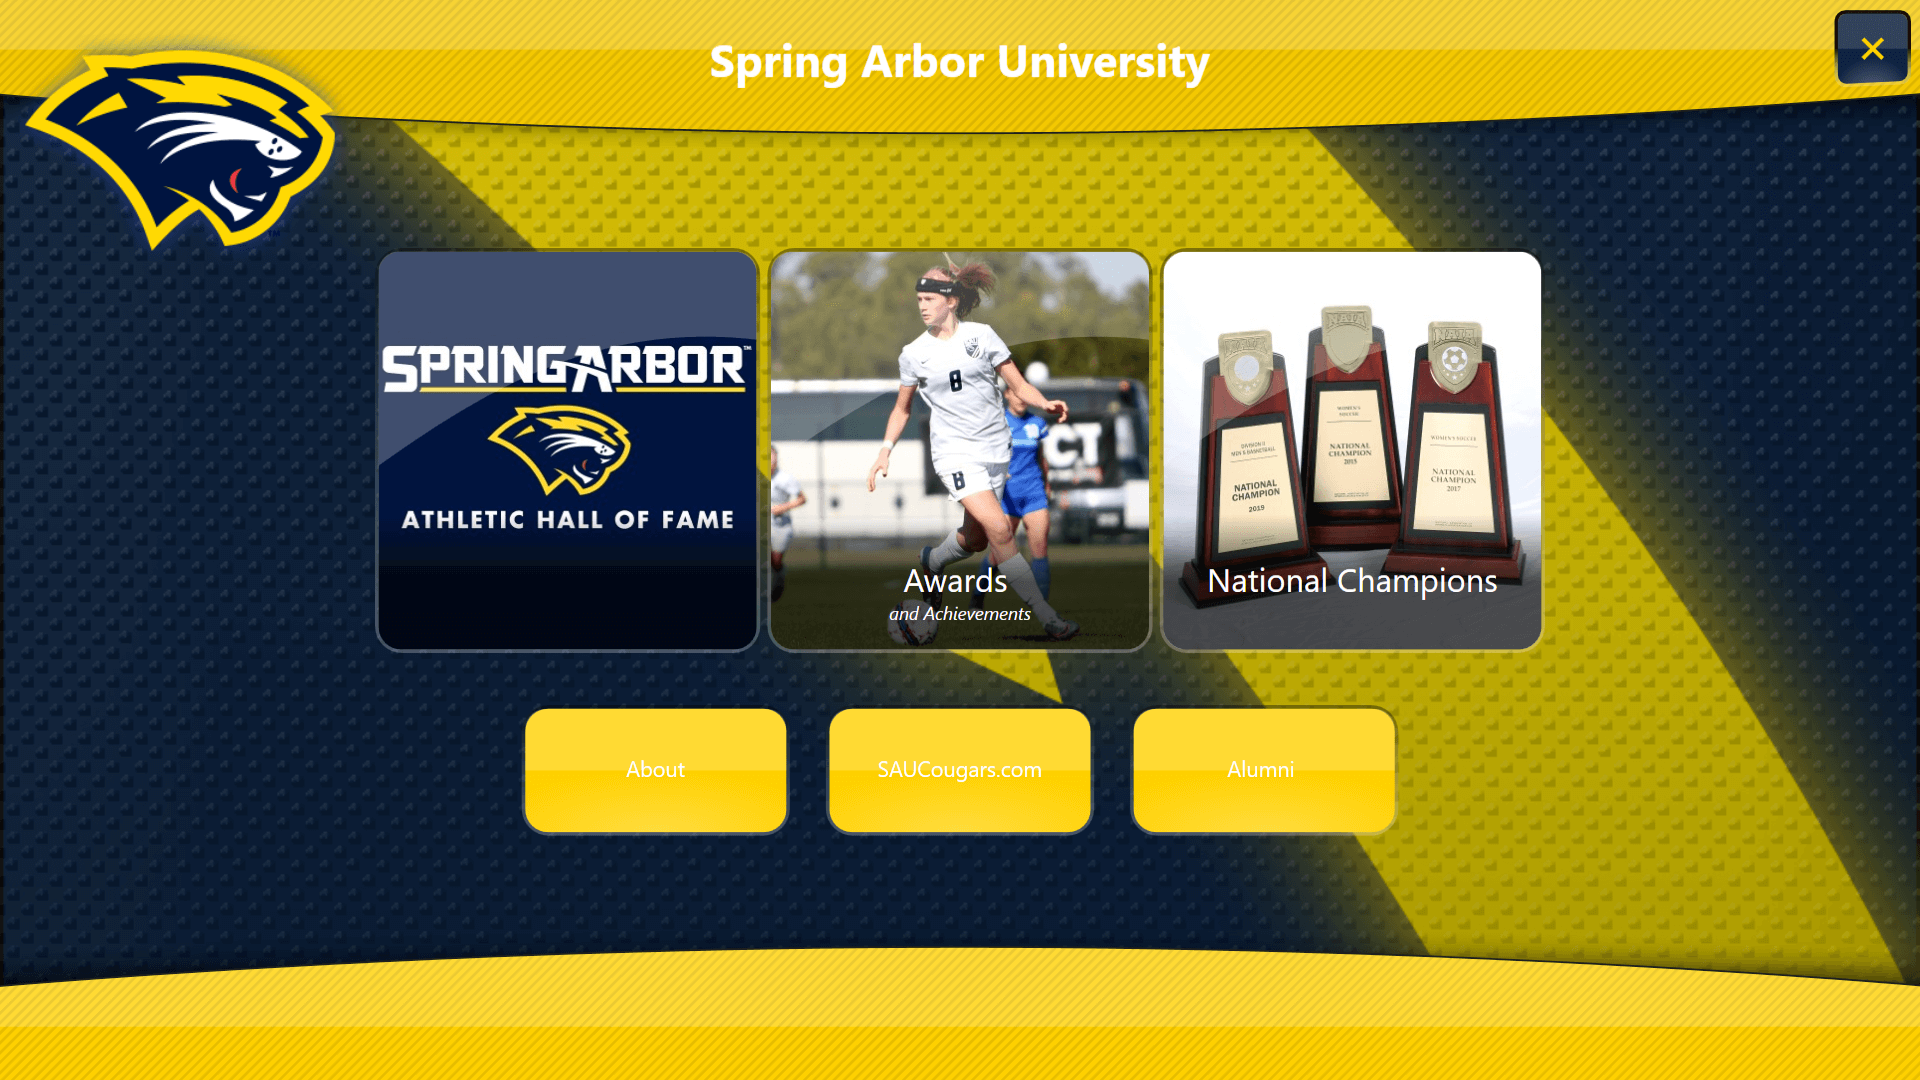 Spring Arbor University digital signage example